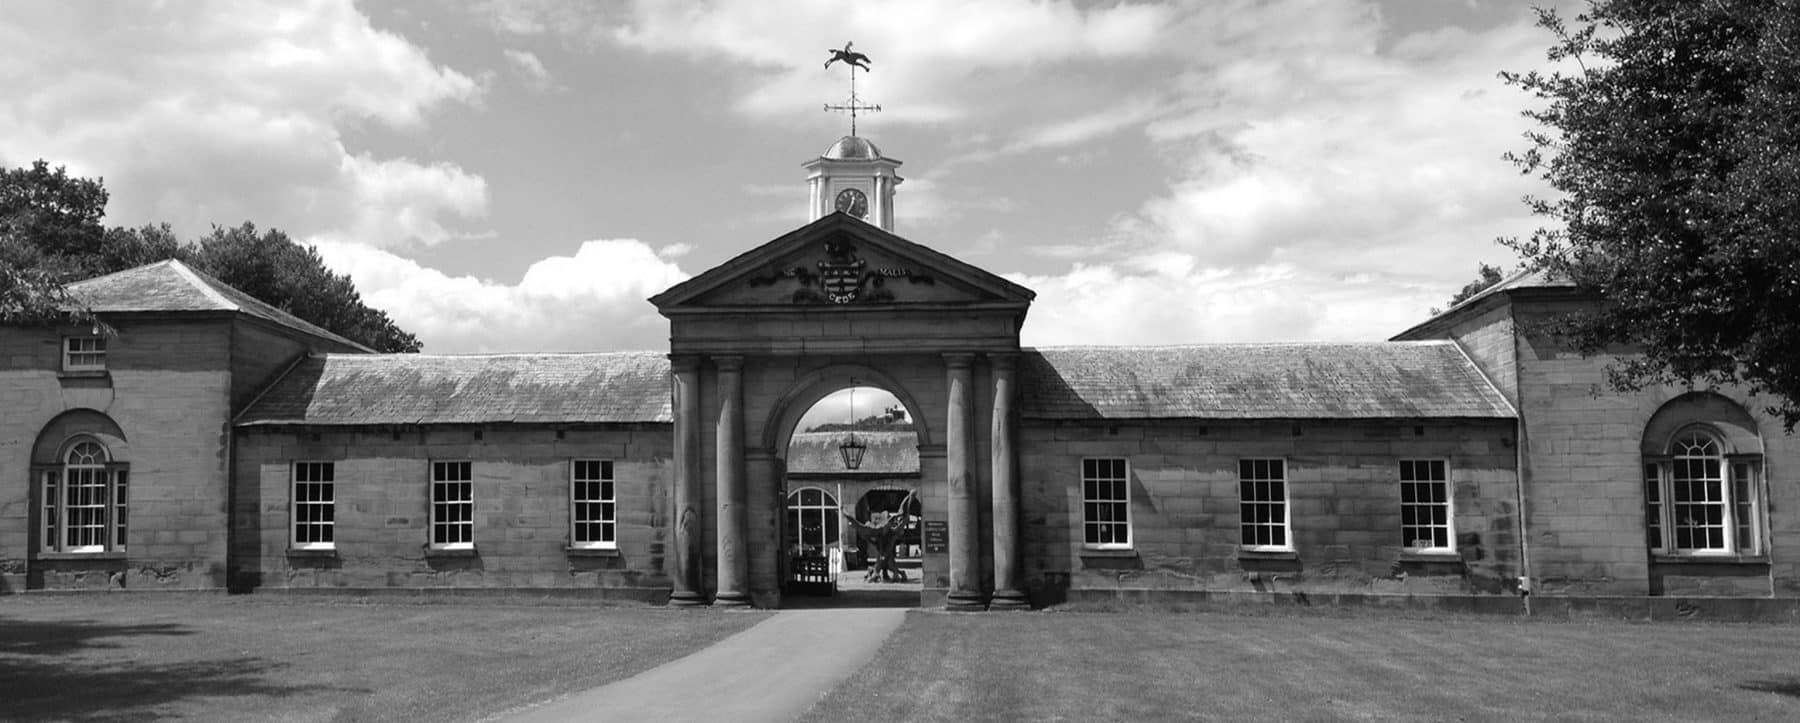 Renishaw stables